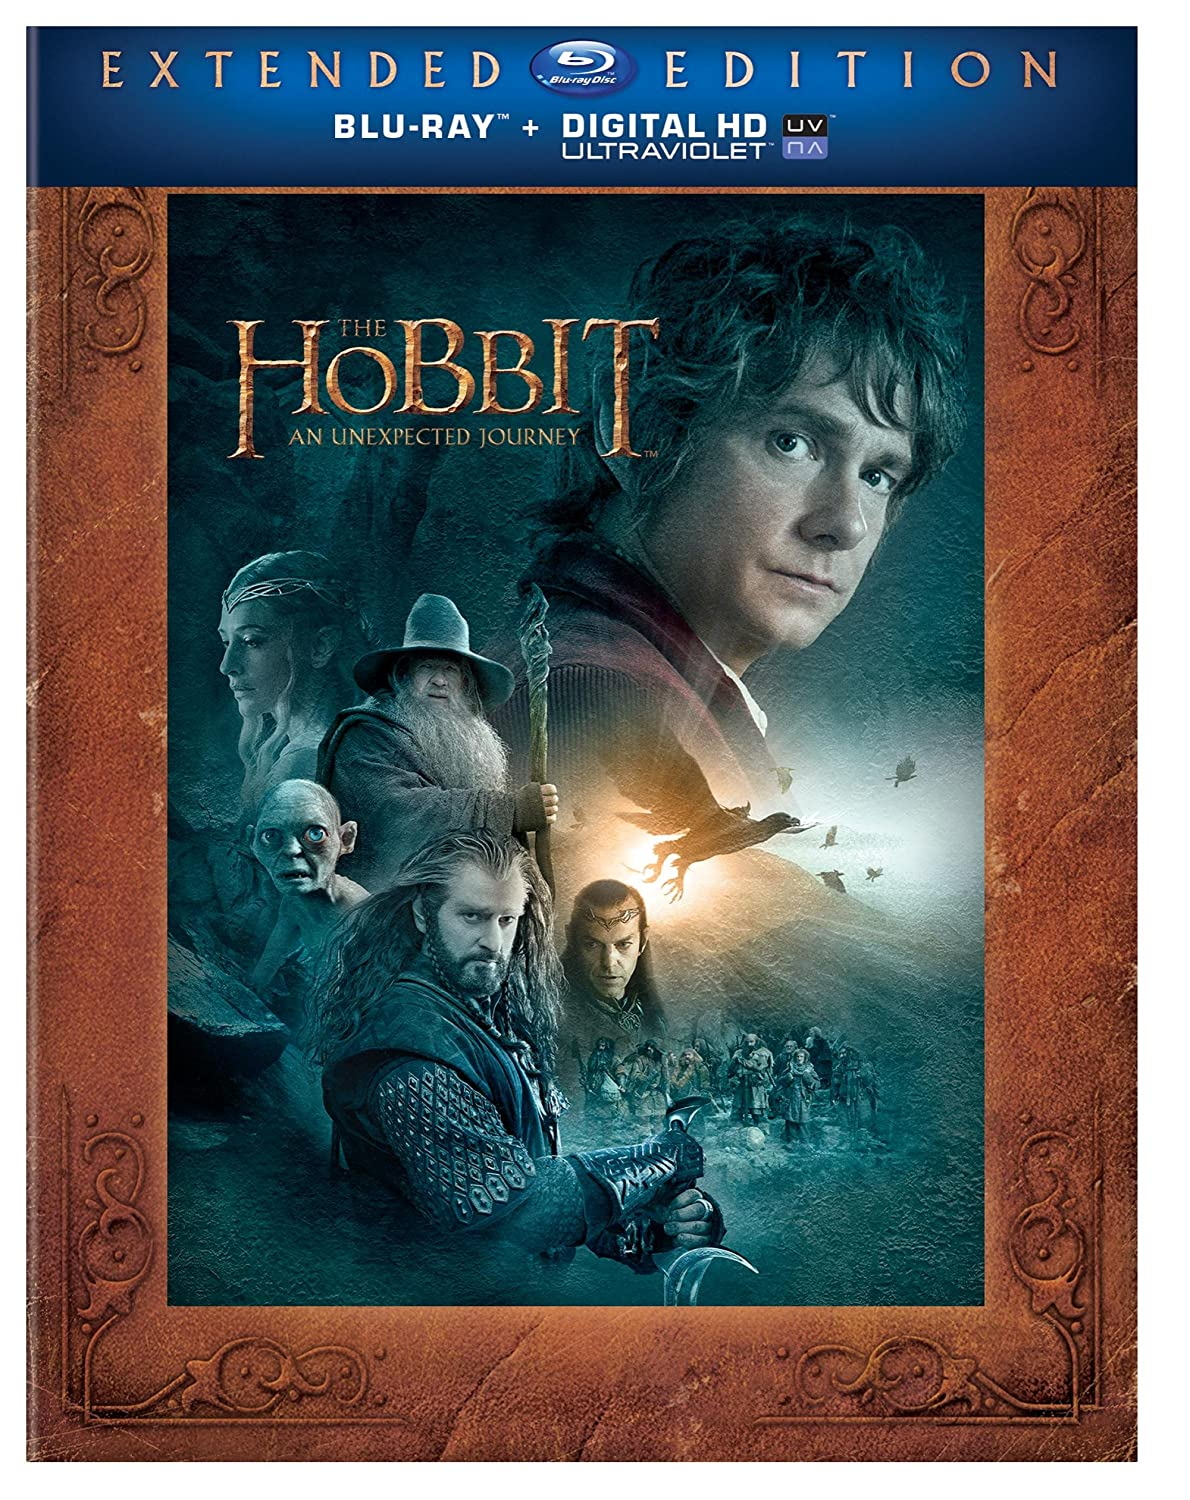 The Hobbit: An Unexpected Journey (Extended Edition) (Blu-ray + UltraViolet) (2013)